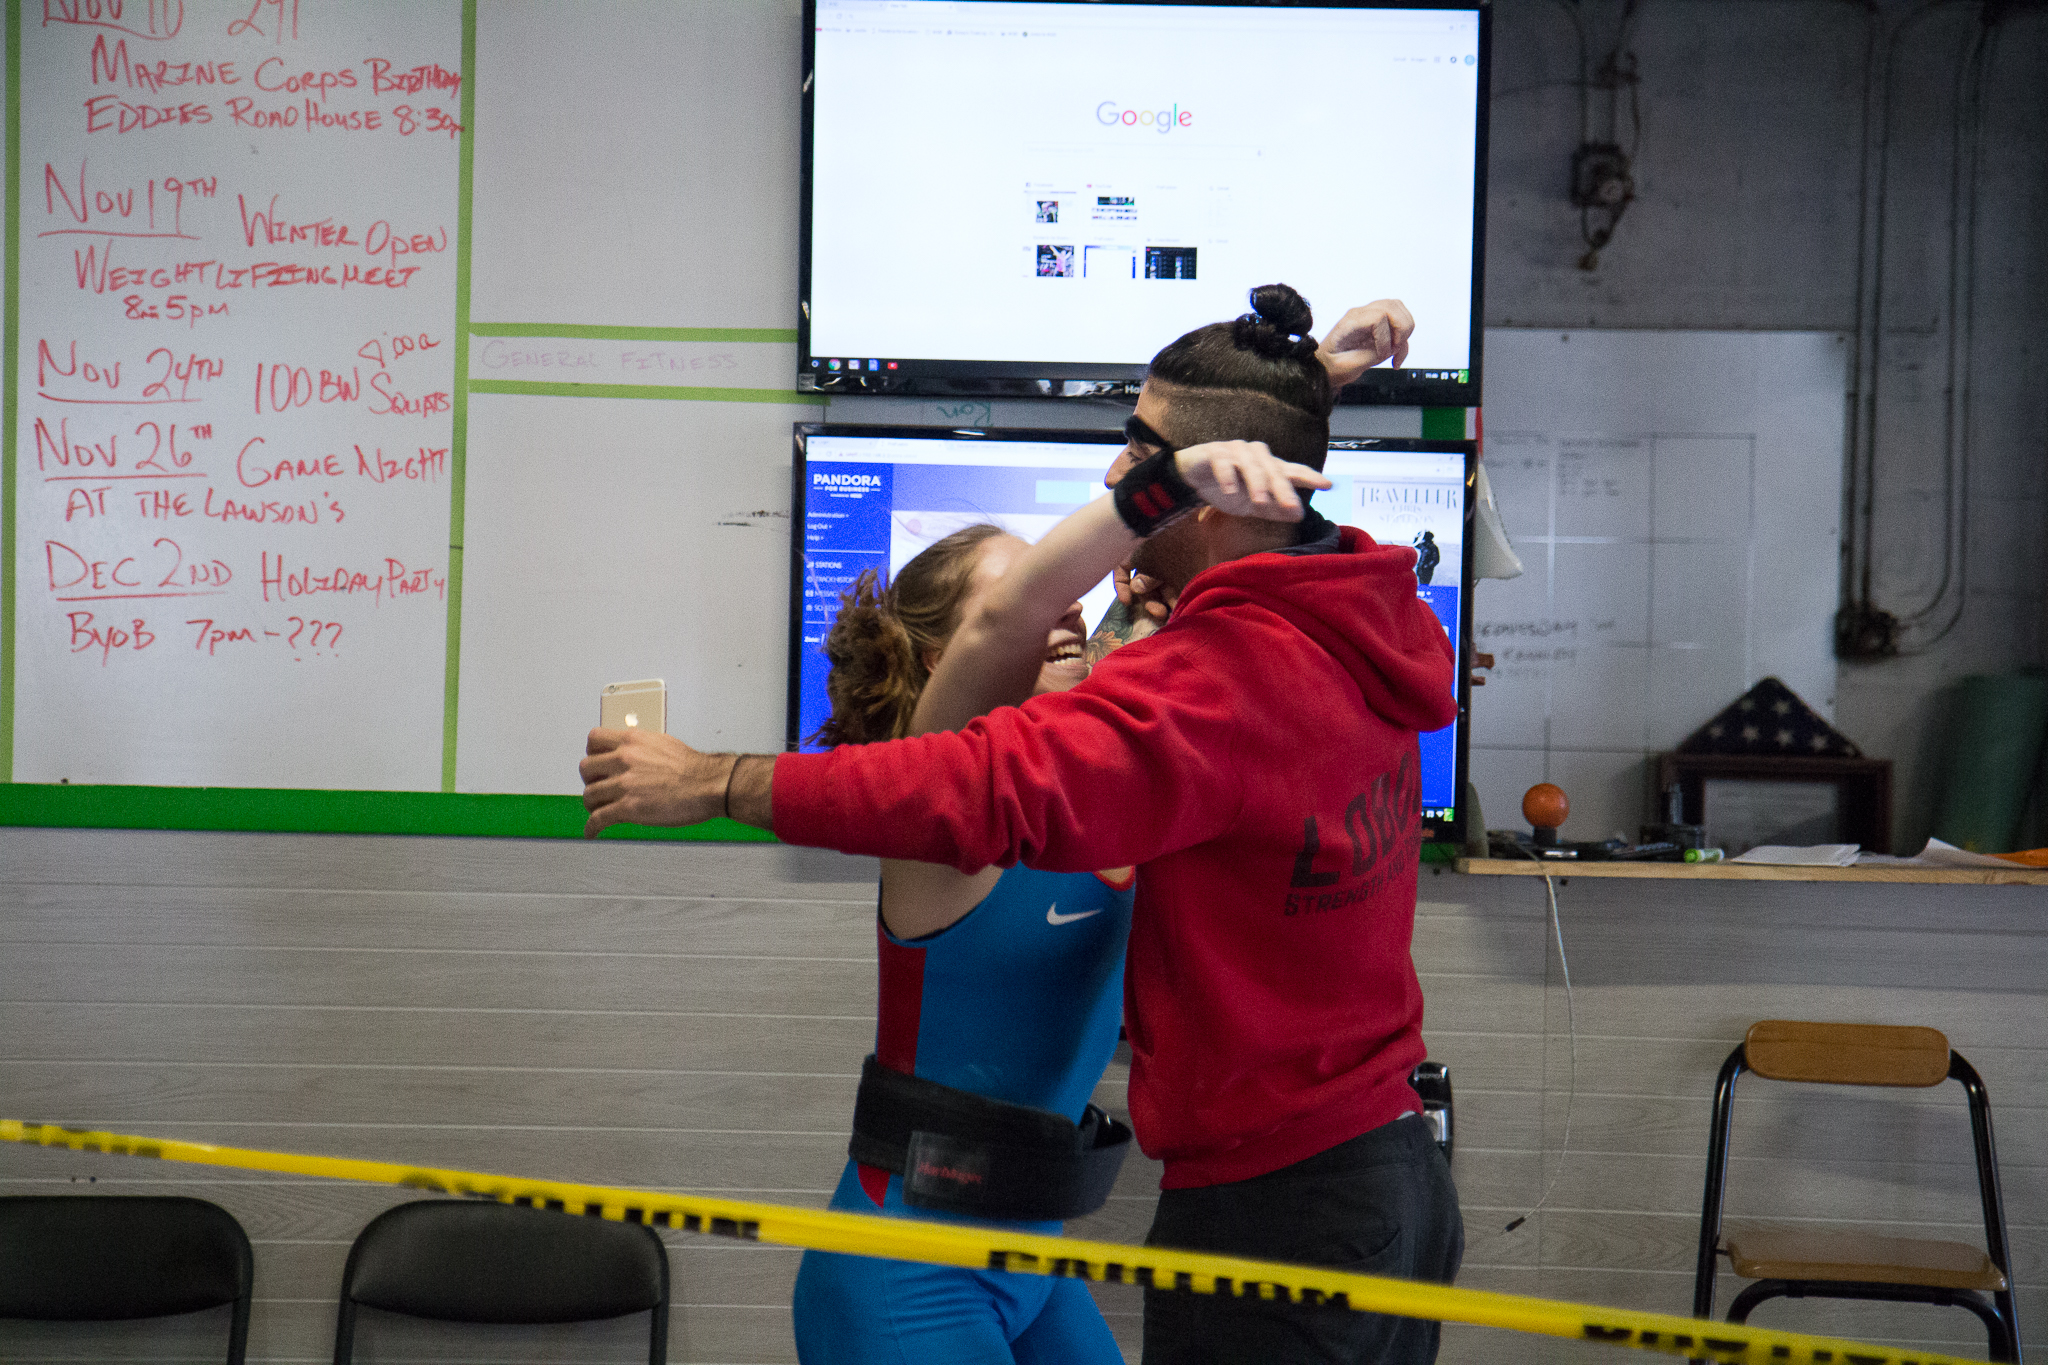 warwick-new-york-intrepid-strength-conditioning-winter-open-weightlifting-meet-weightlifting-photography (13 of 15).jpg